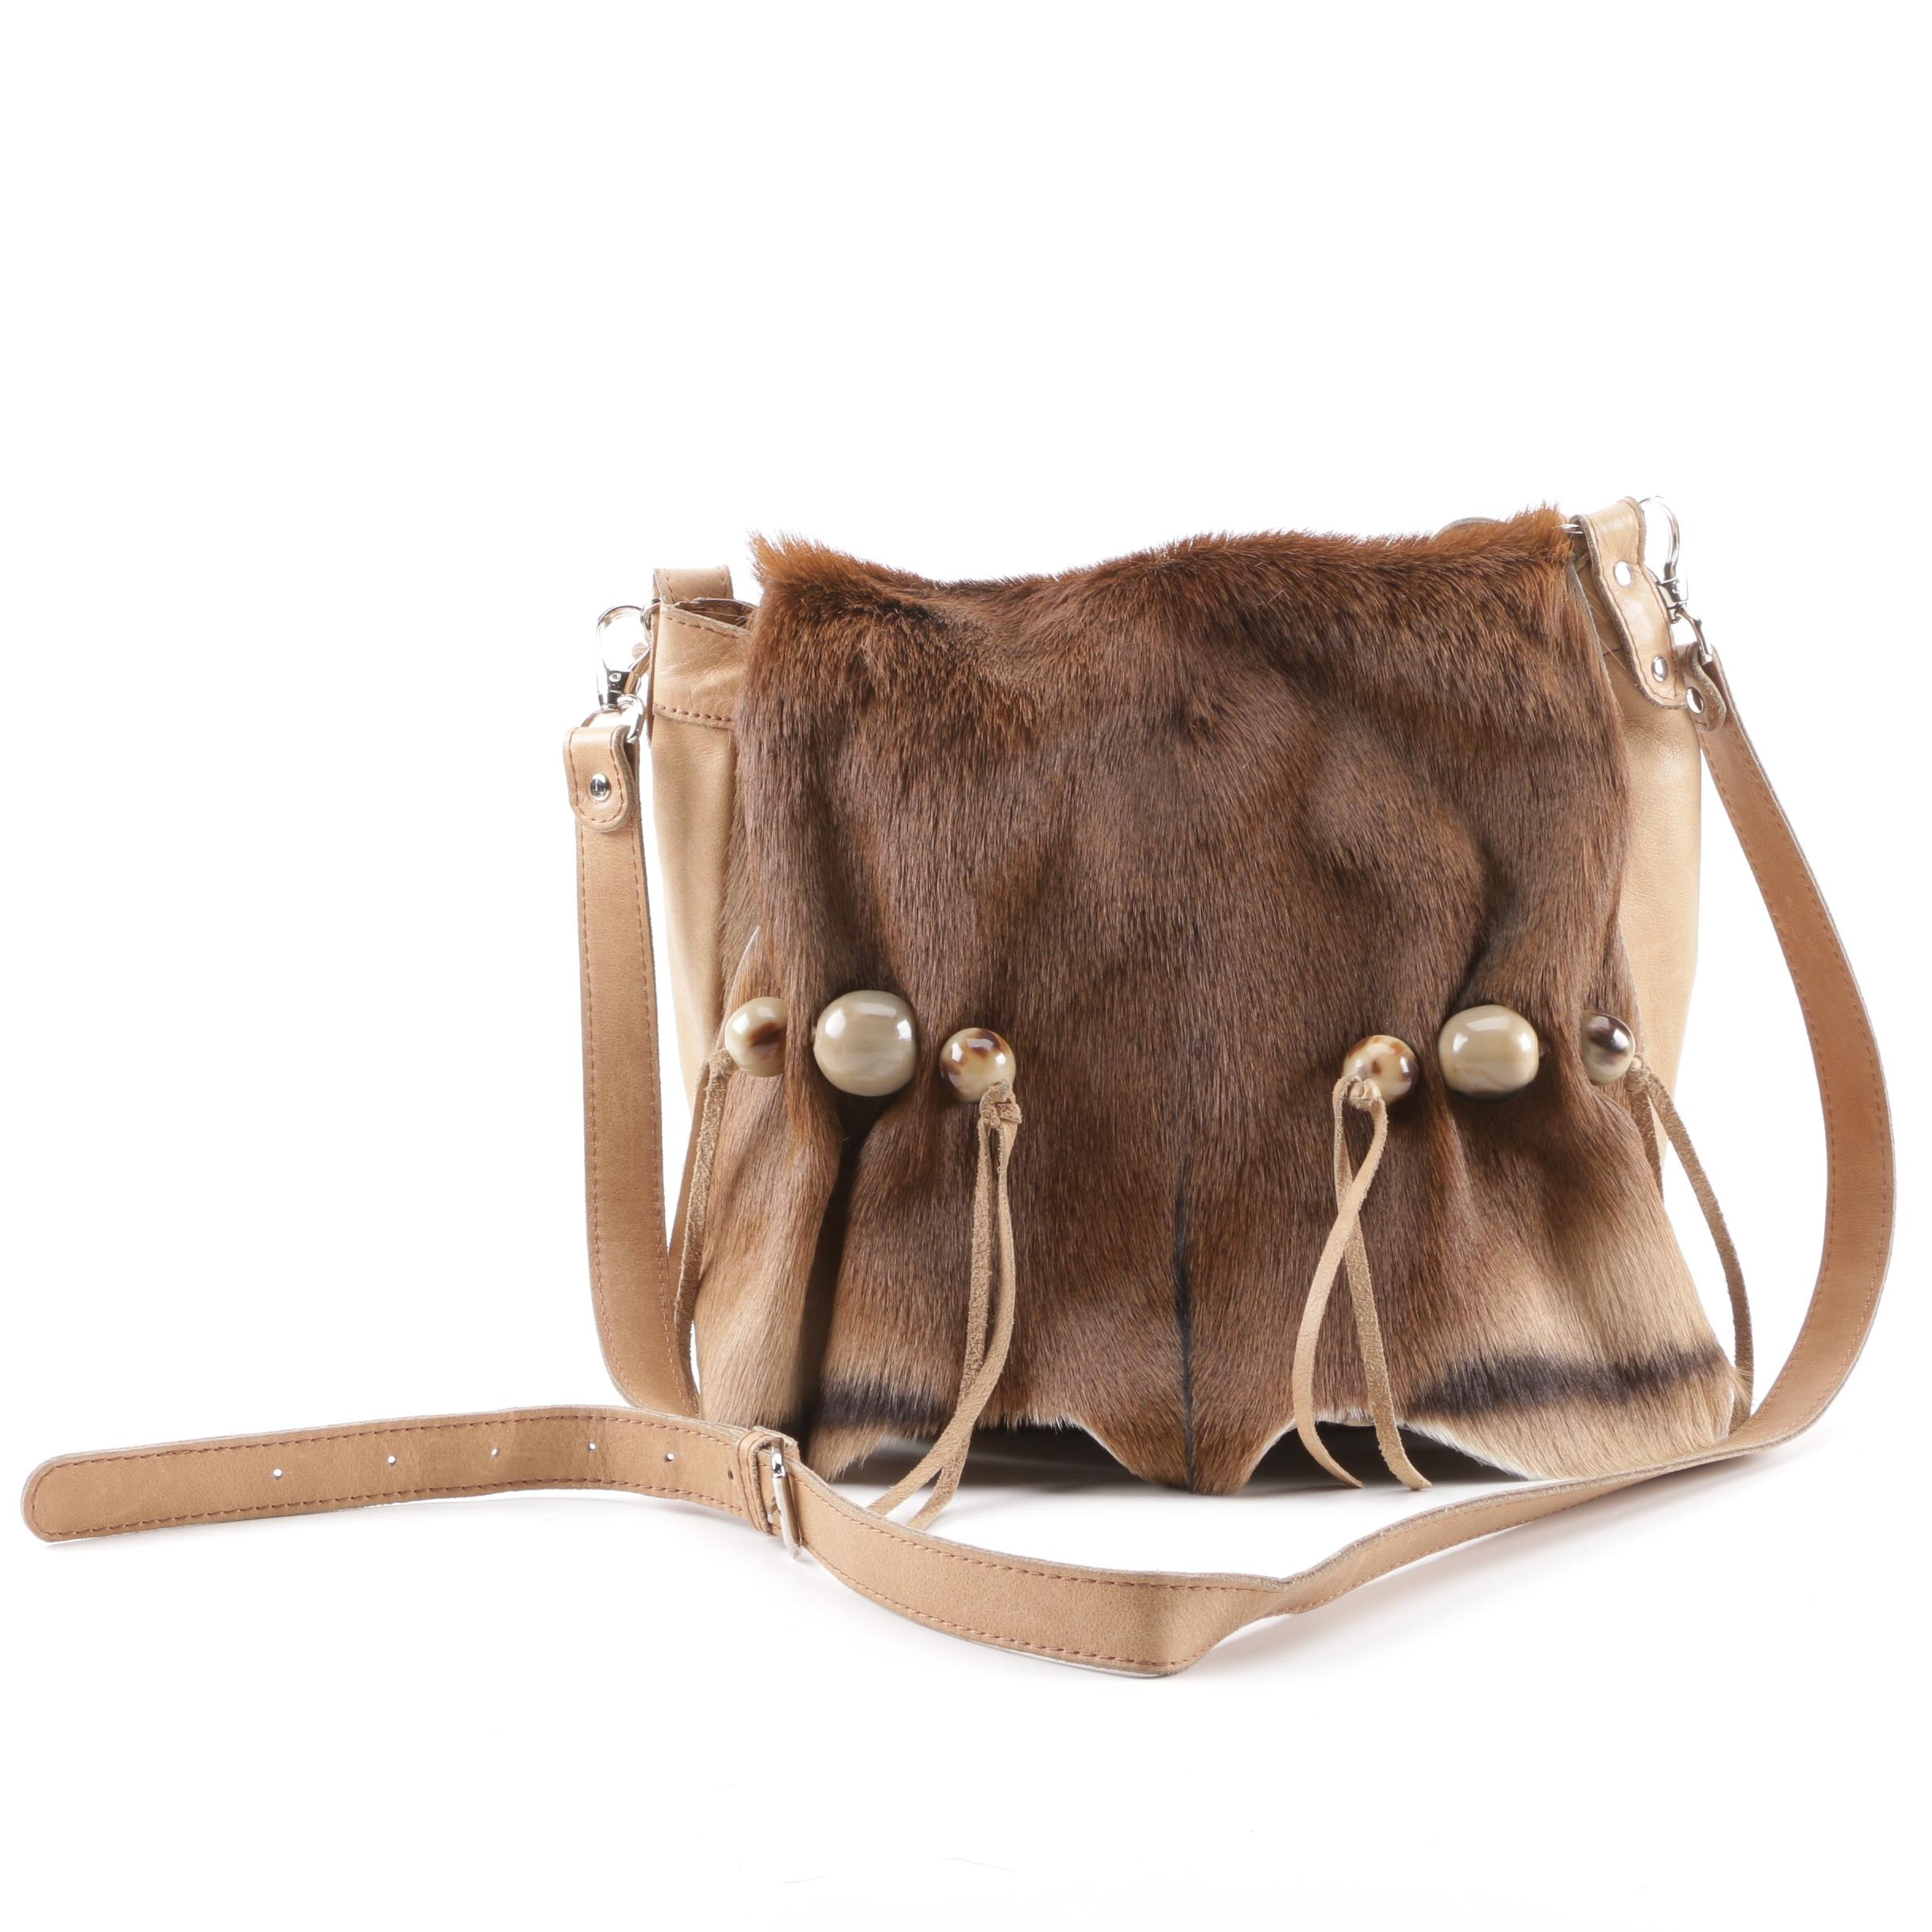 Kulu Leather and Pony Hair Front Flap Convertible Satchel